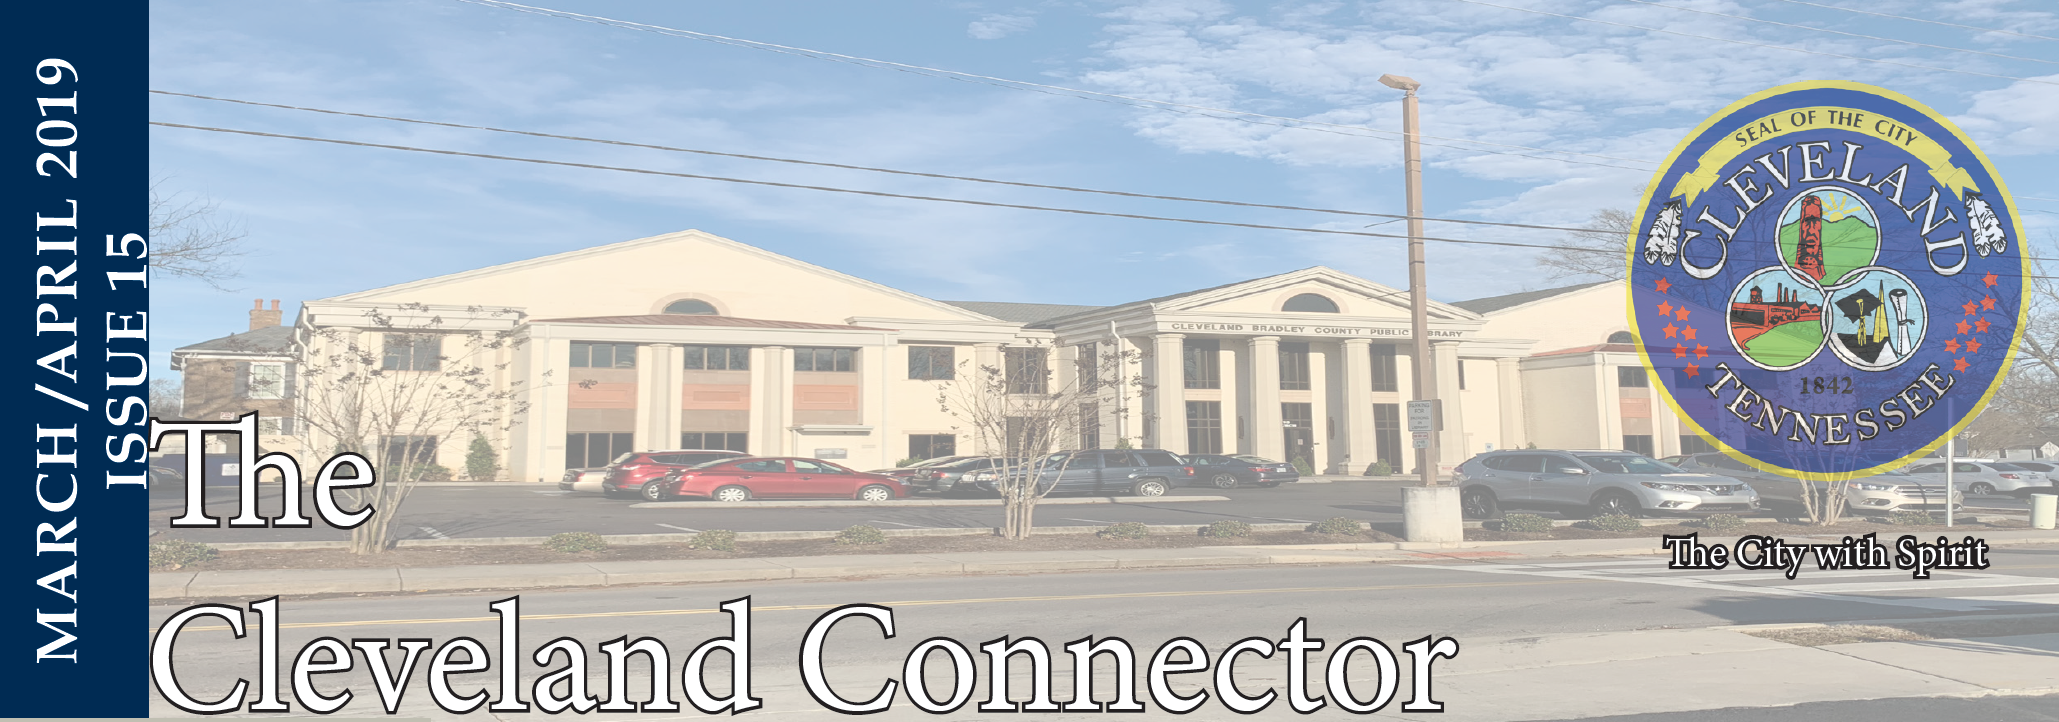 March/April 2019 Issue 15 - The Cleveland Connector Opens in new window